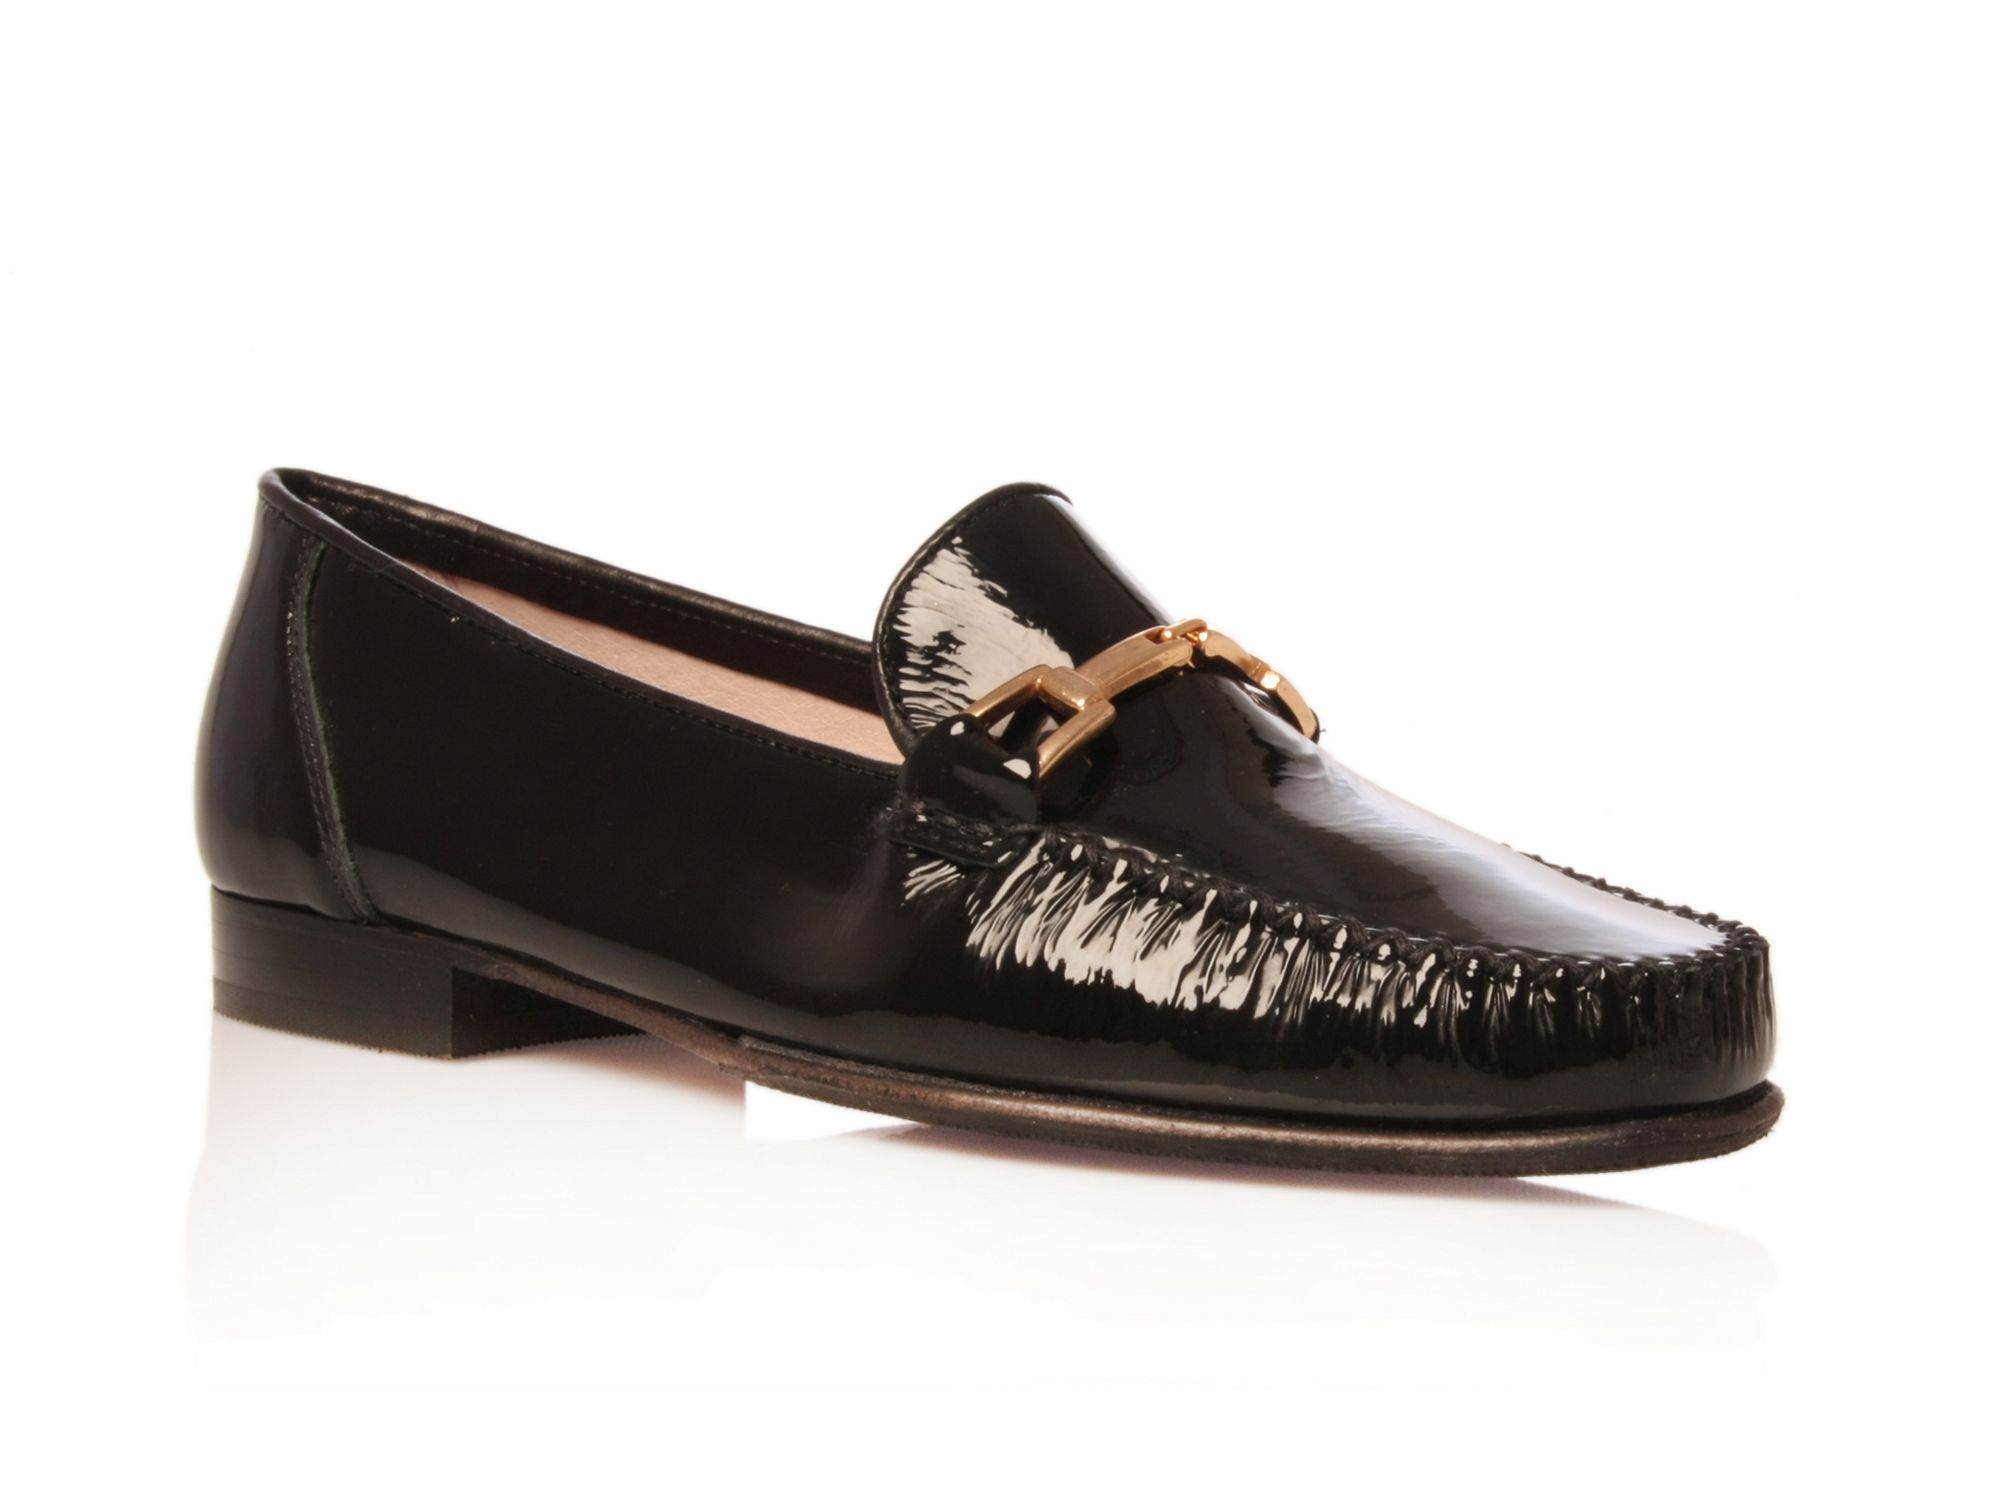 Carvela Kurt Geiger Mariner Loafers In Black For Men Lyst